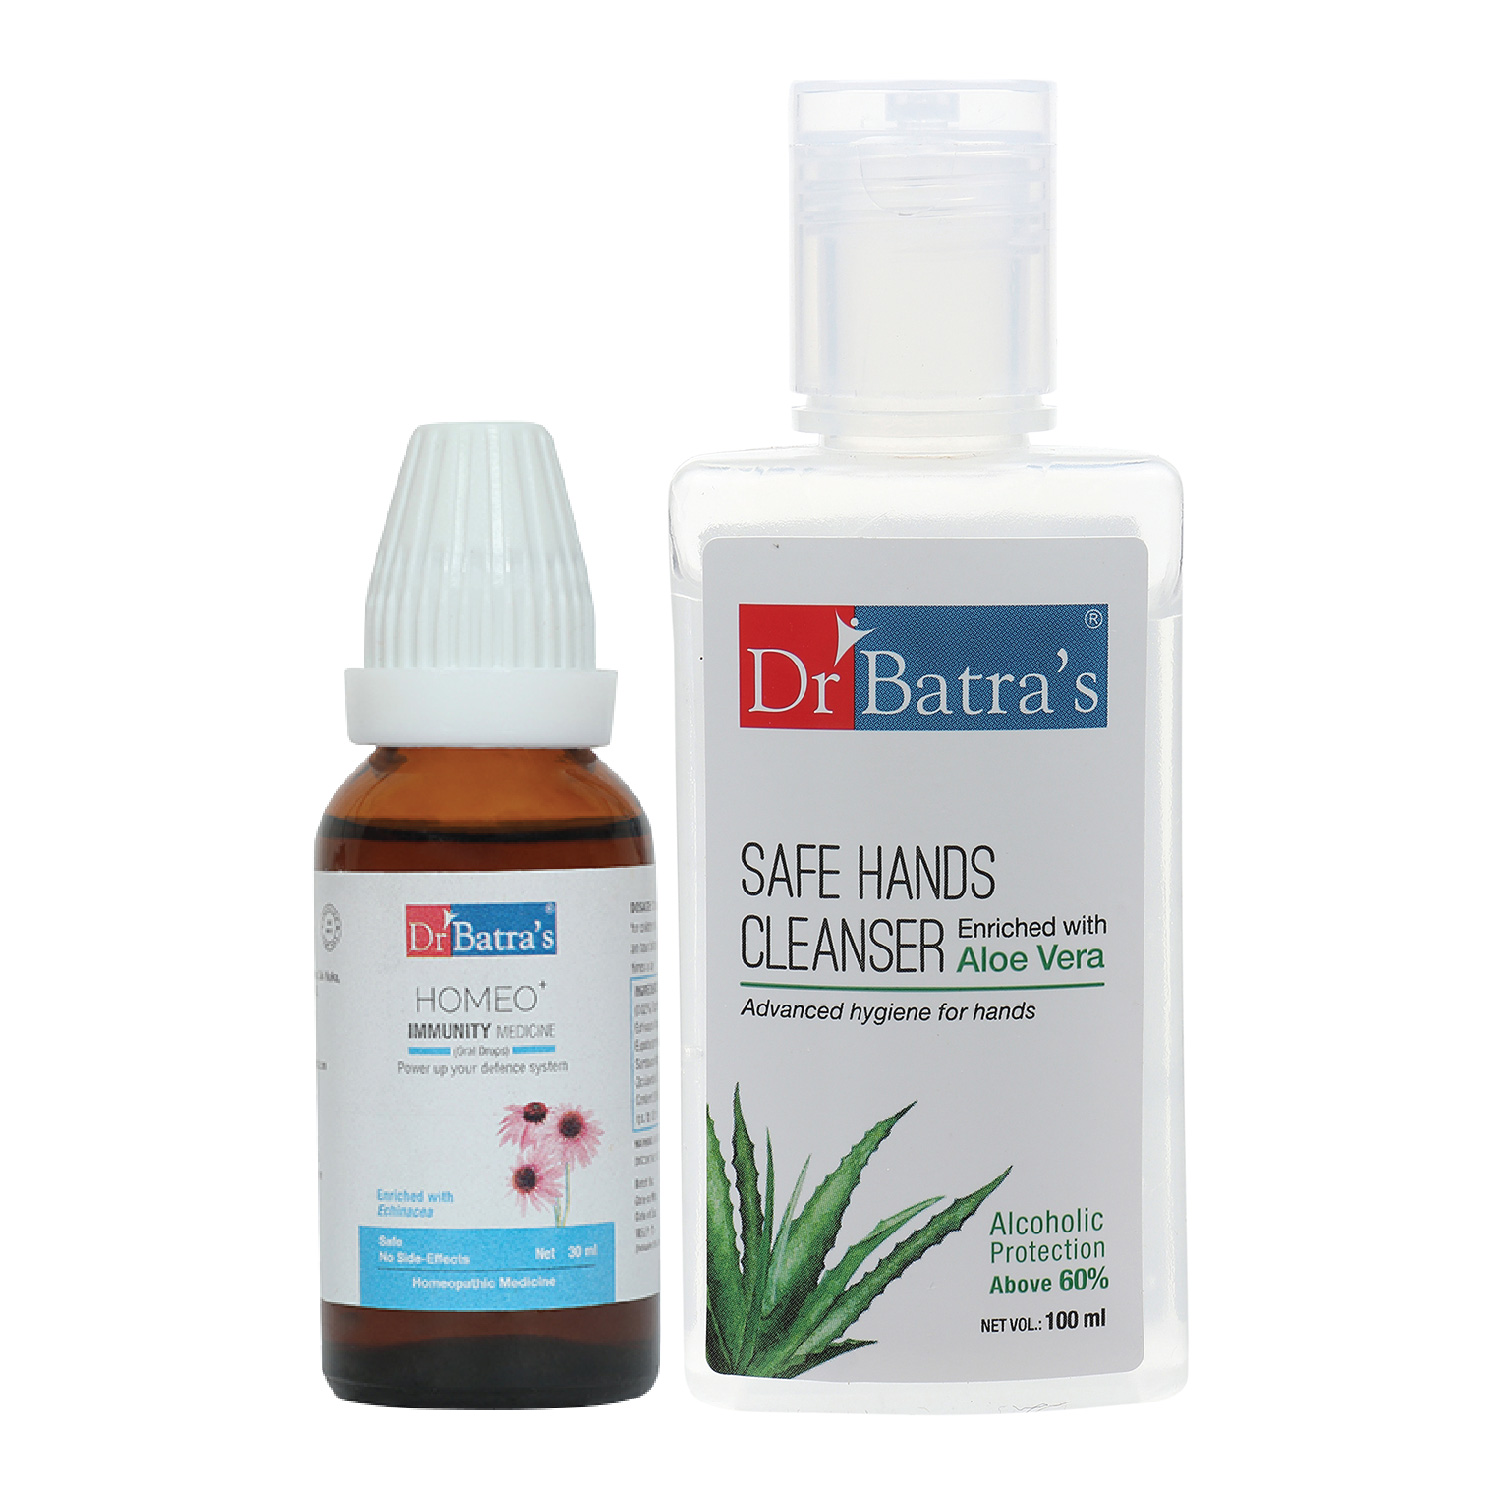 Dr Batra's   Dr Batra's Homeo+ Immunity Medicine Oral Drops Scientific & Natural  Stay Home, Stay Safe - 30 ml and Safe Hands Cleanser  Aloe vera - 100 ml